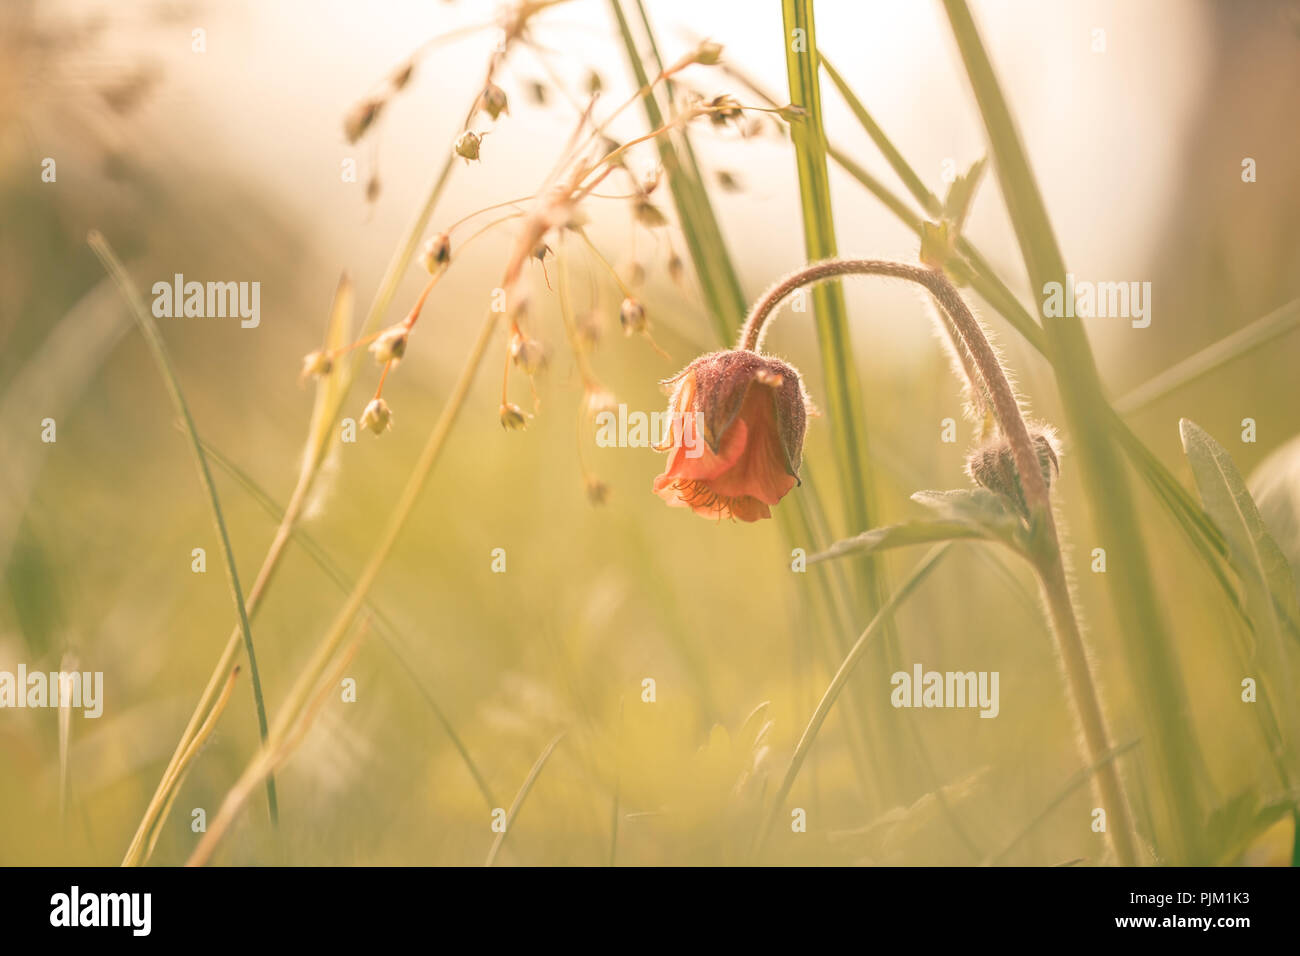 Cormorot (Geum rivale) flowering on a meadow in soft light - Stock Image